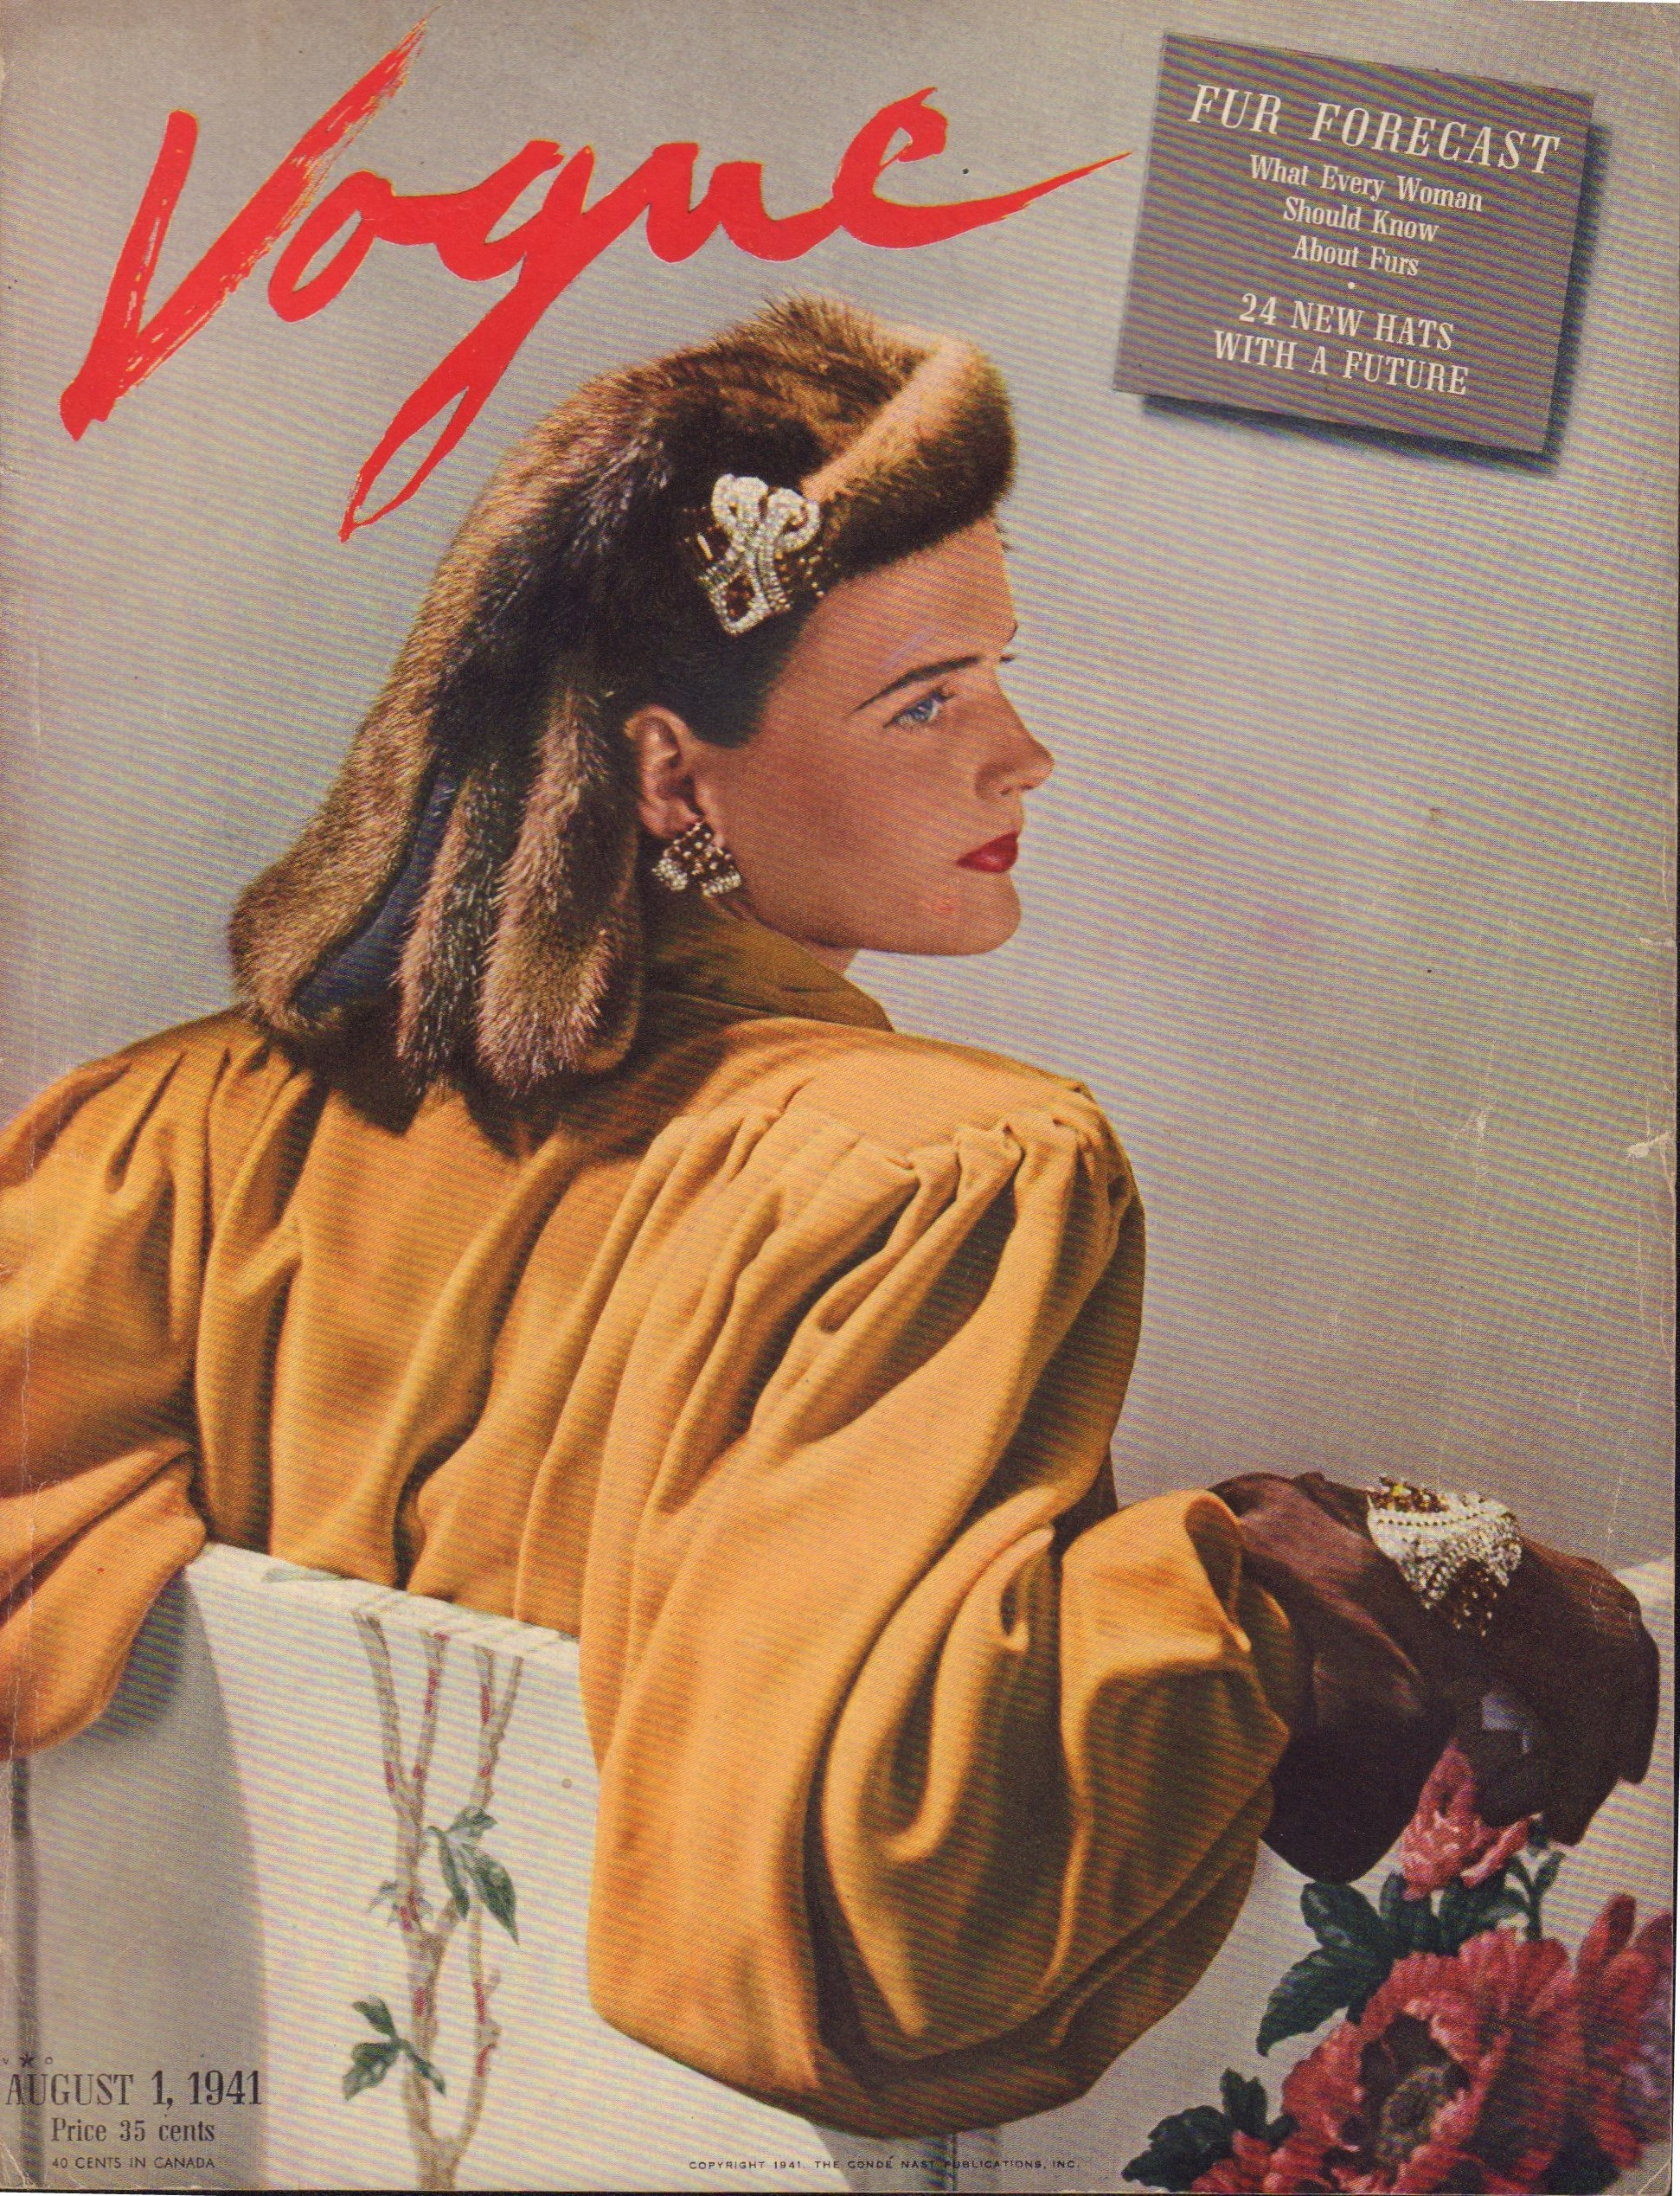 Image for Vogue August 1, 1941 Cover